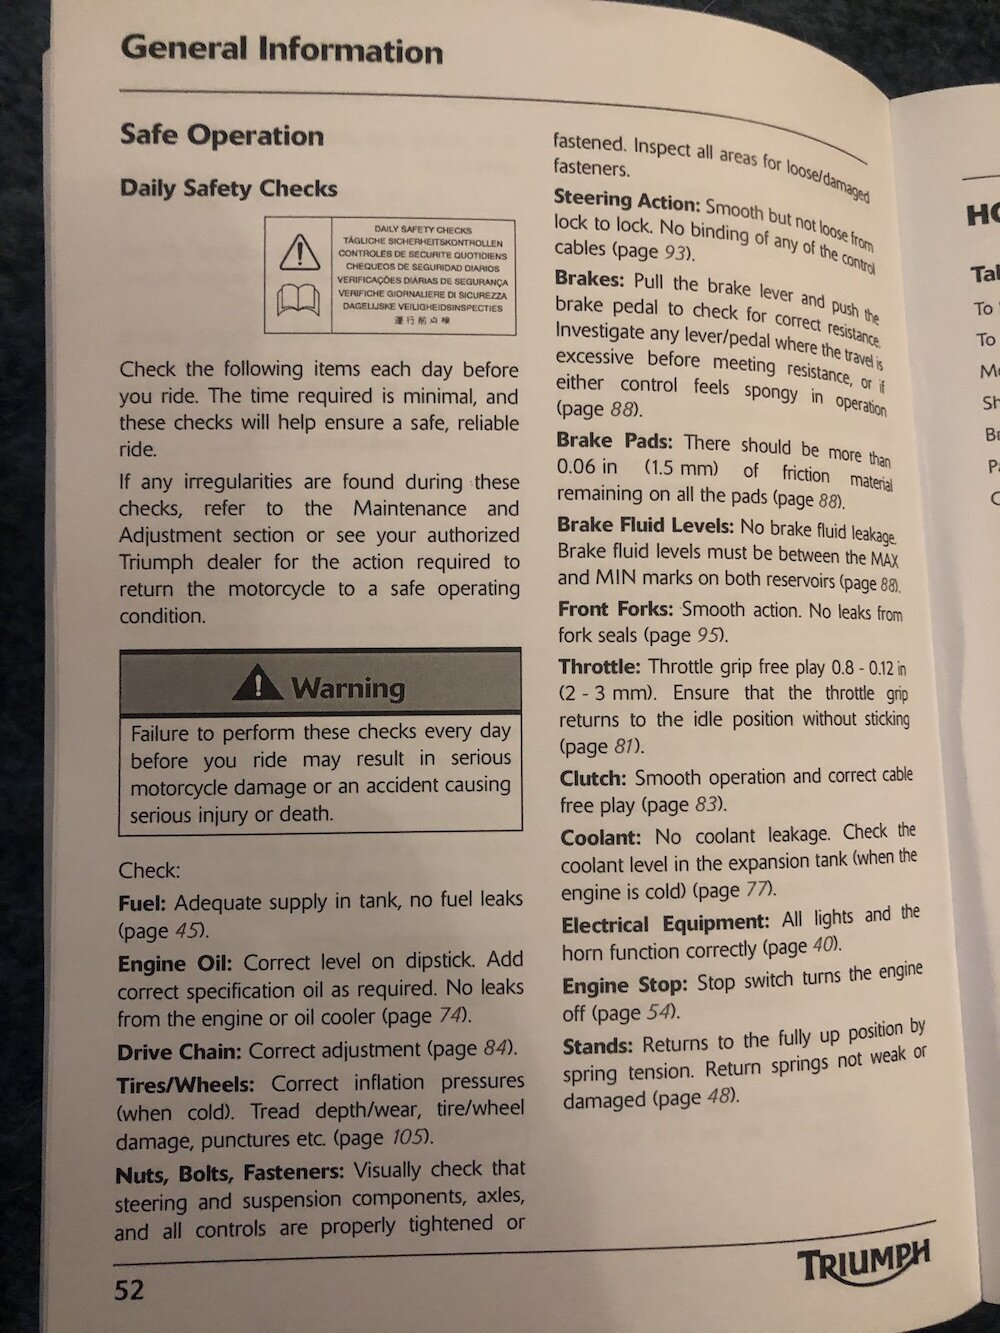 This simple list of frequent safety checks works for any motorcycle! I wouldn't say that you need to do it everyday unless you ride everyday. But it's also reasonable to do it every other day if you ride that much :)